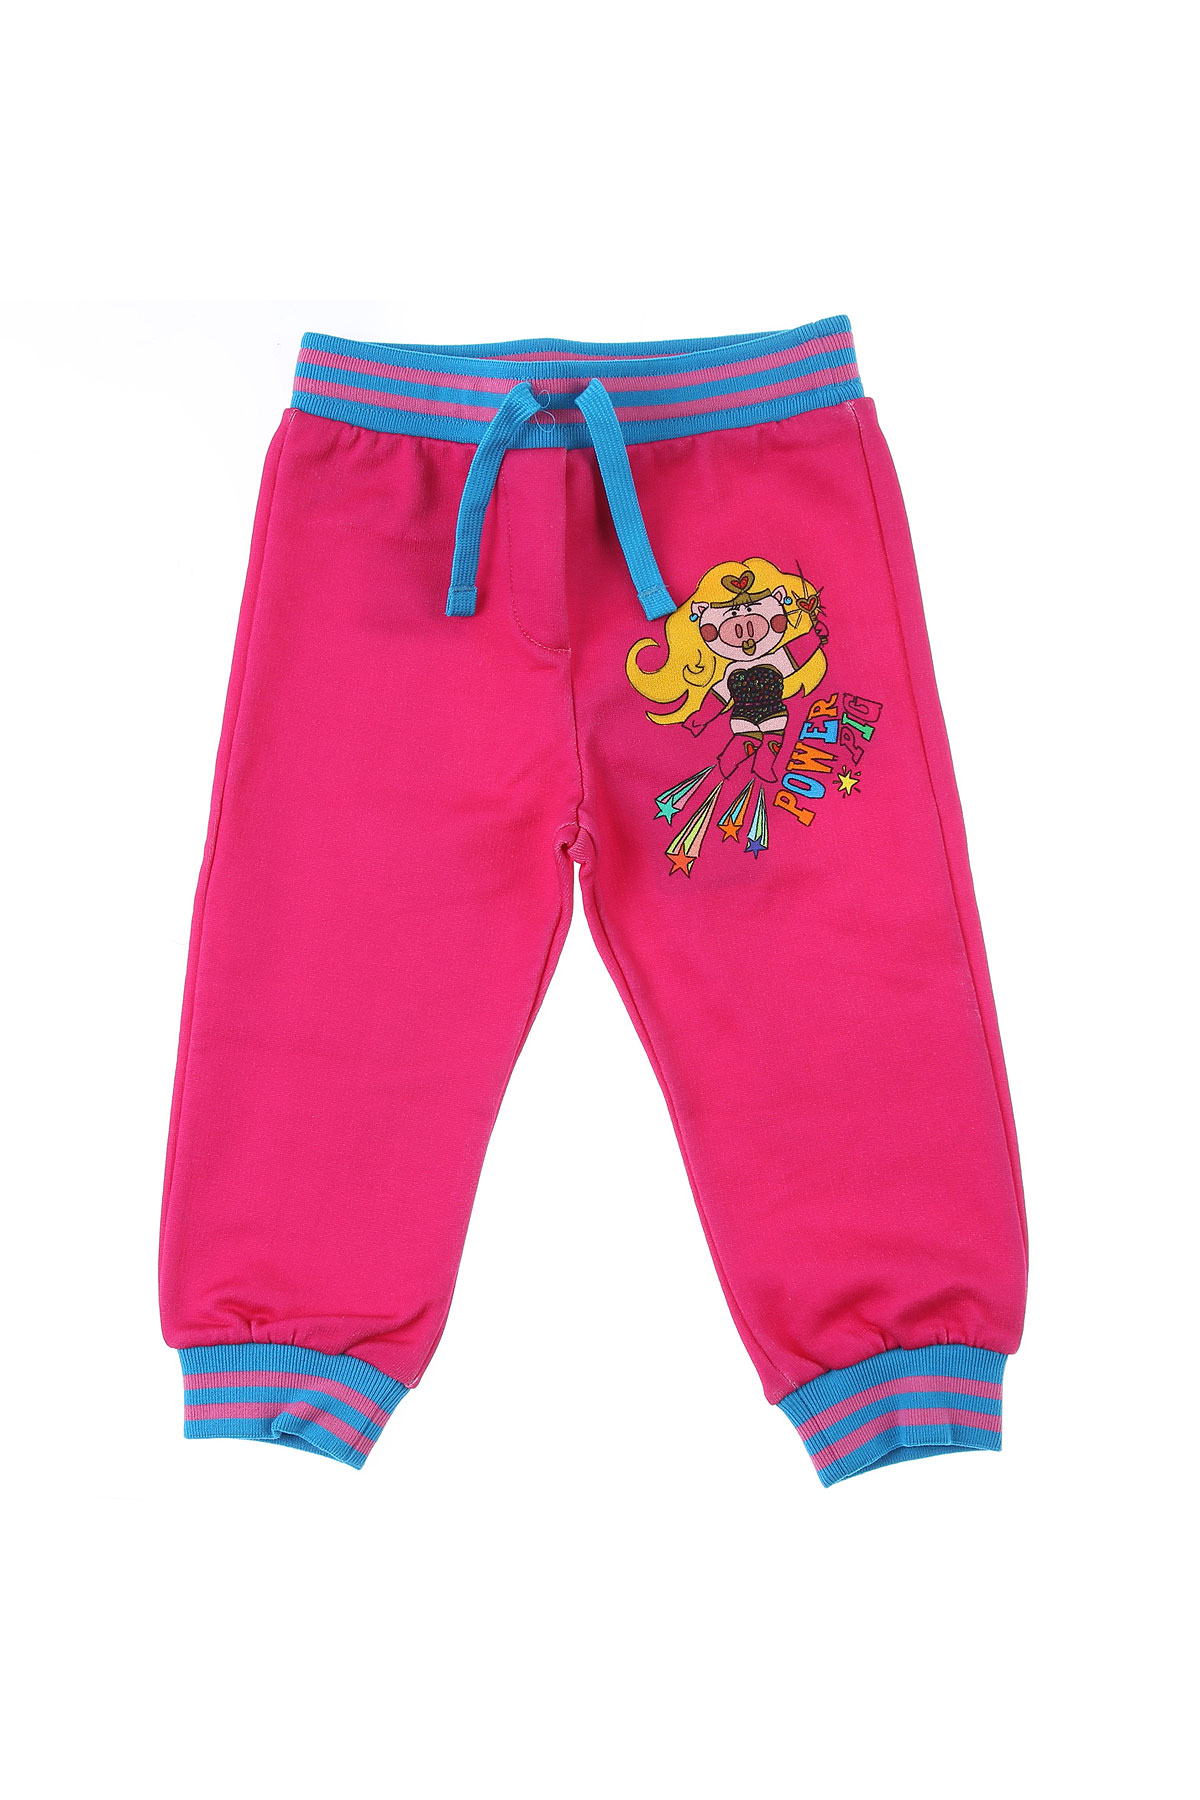 Dolce & Gabbana Baby Pants for Girls On Sale in Outlet, Fuchsia, Cotton, 2019, 12M 18M 24M 30M